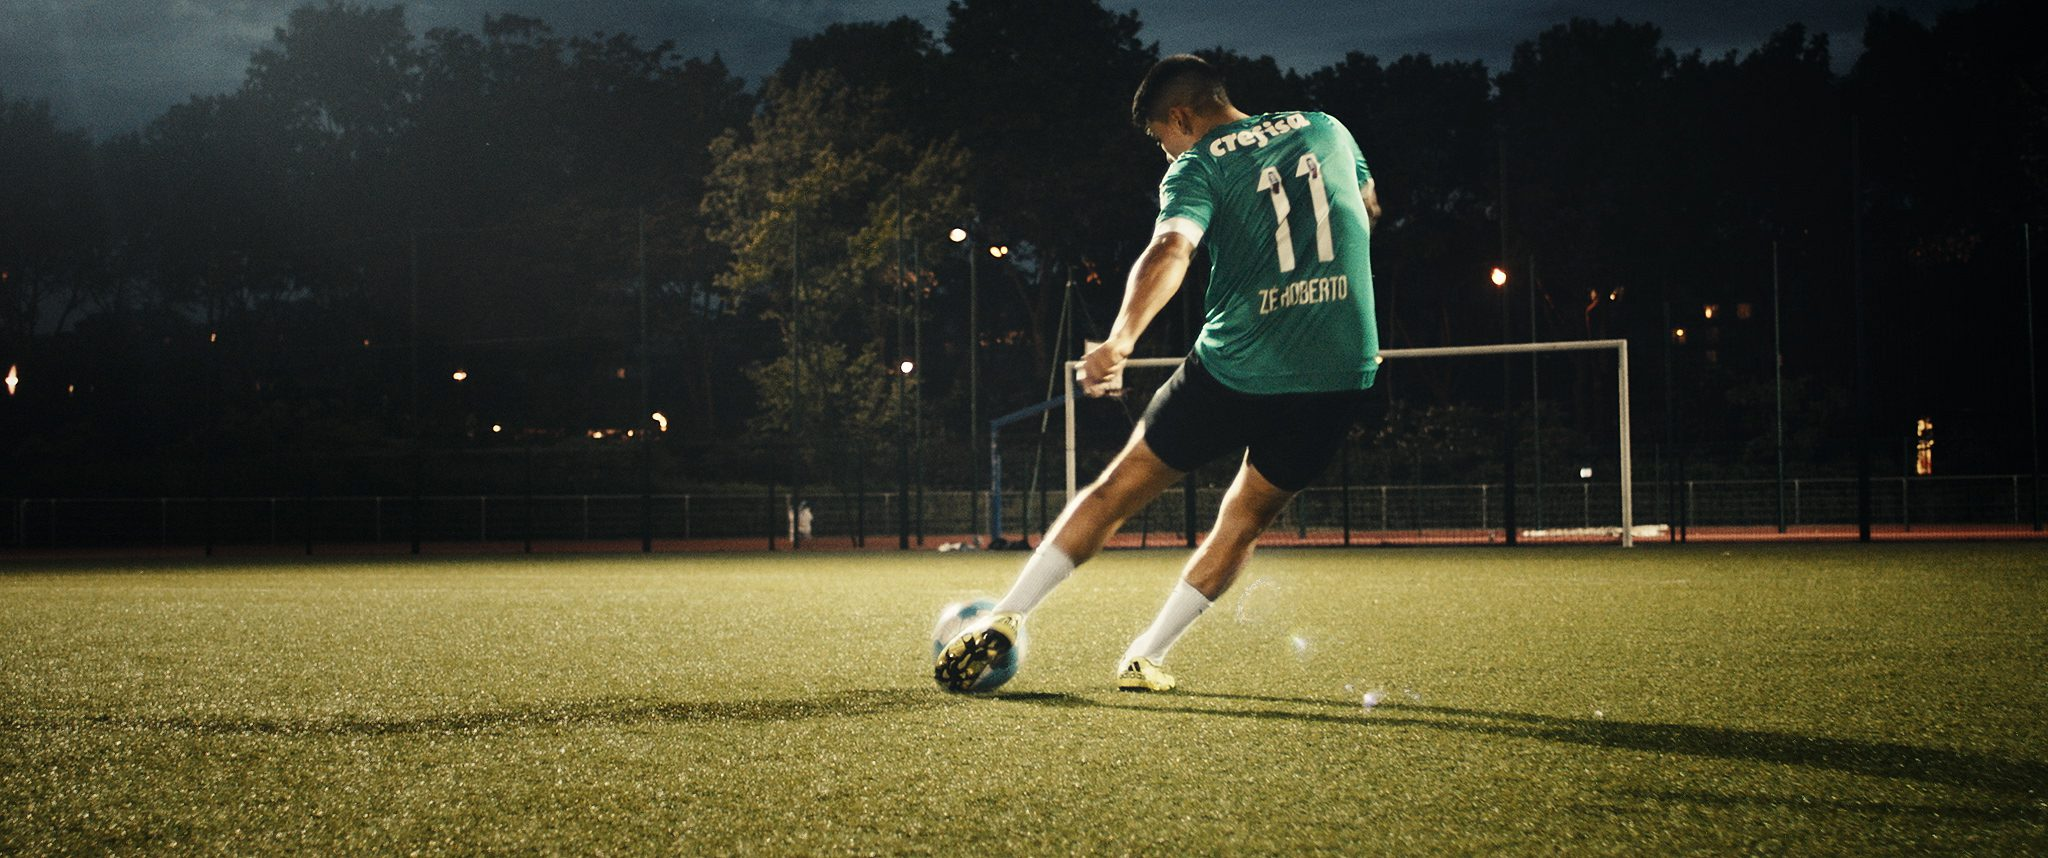 Soccer Player kicks the ball